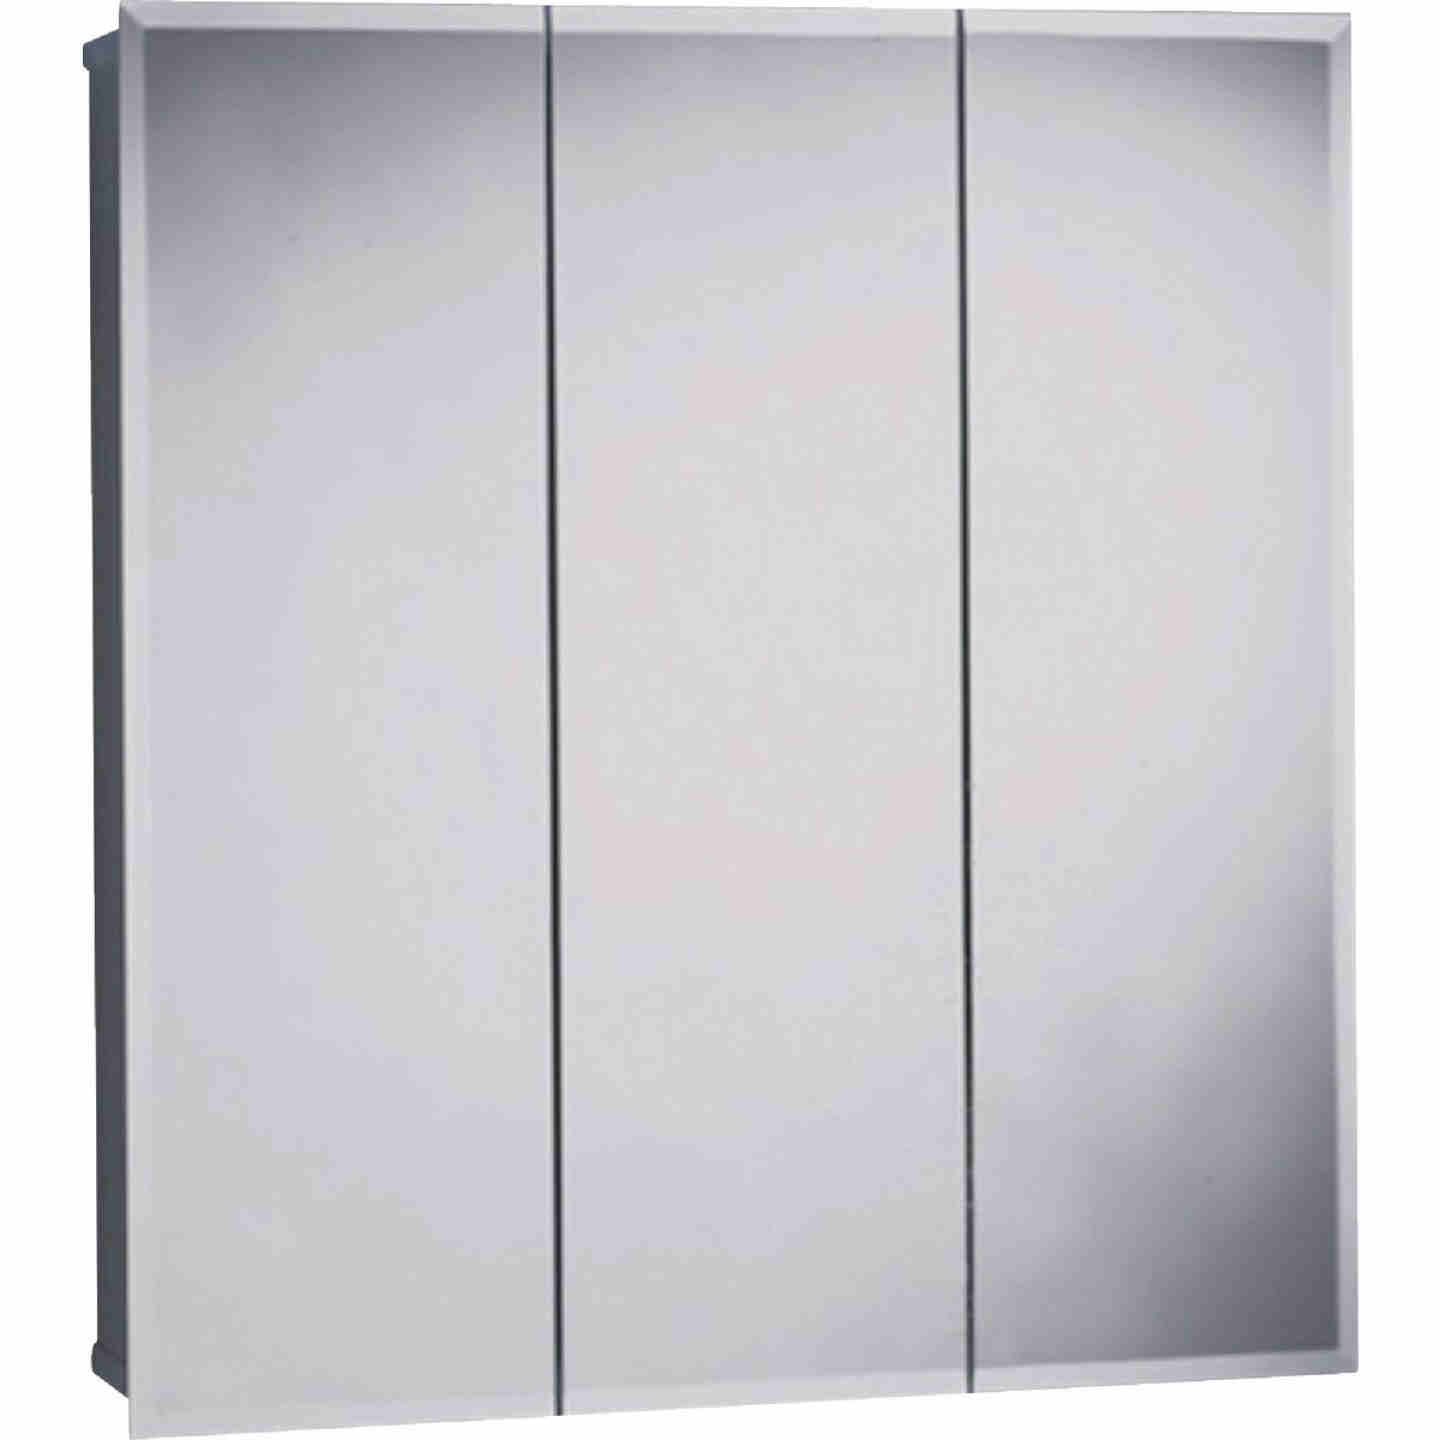 Zenith Frameless Beveled 23-5/8 In. W x 25-1/2 In. H x 4-1/2 In. D Tri-View Surface Mount Medicine Cabinet Image 1